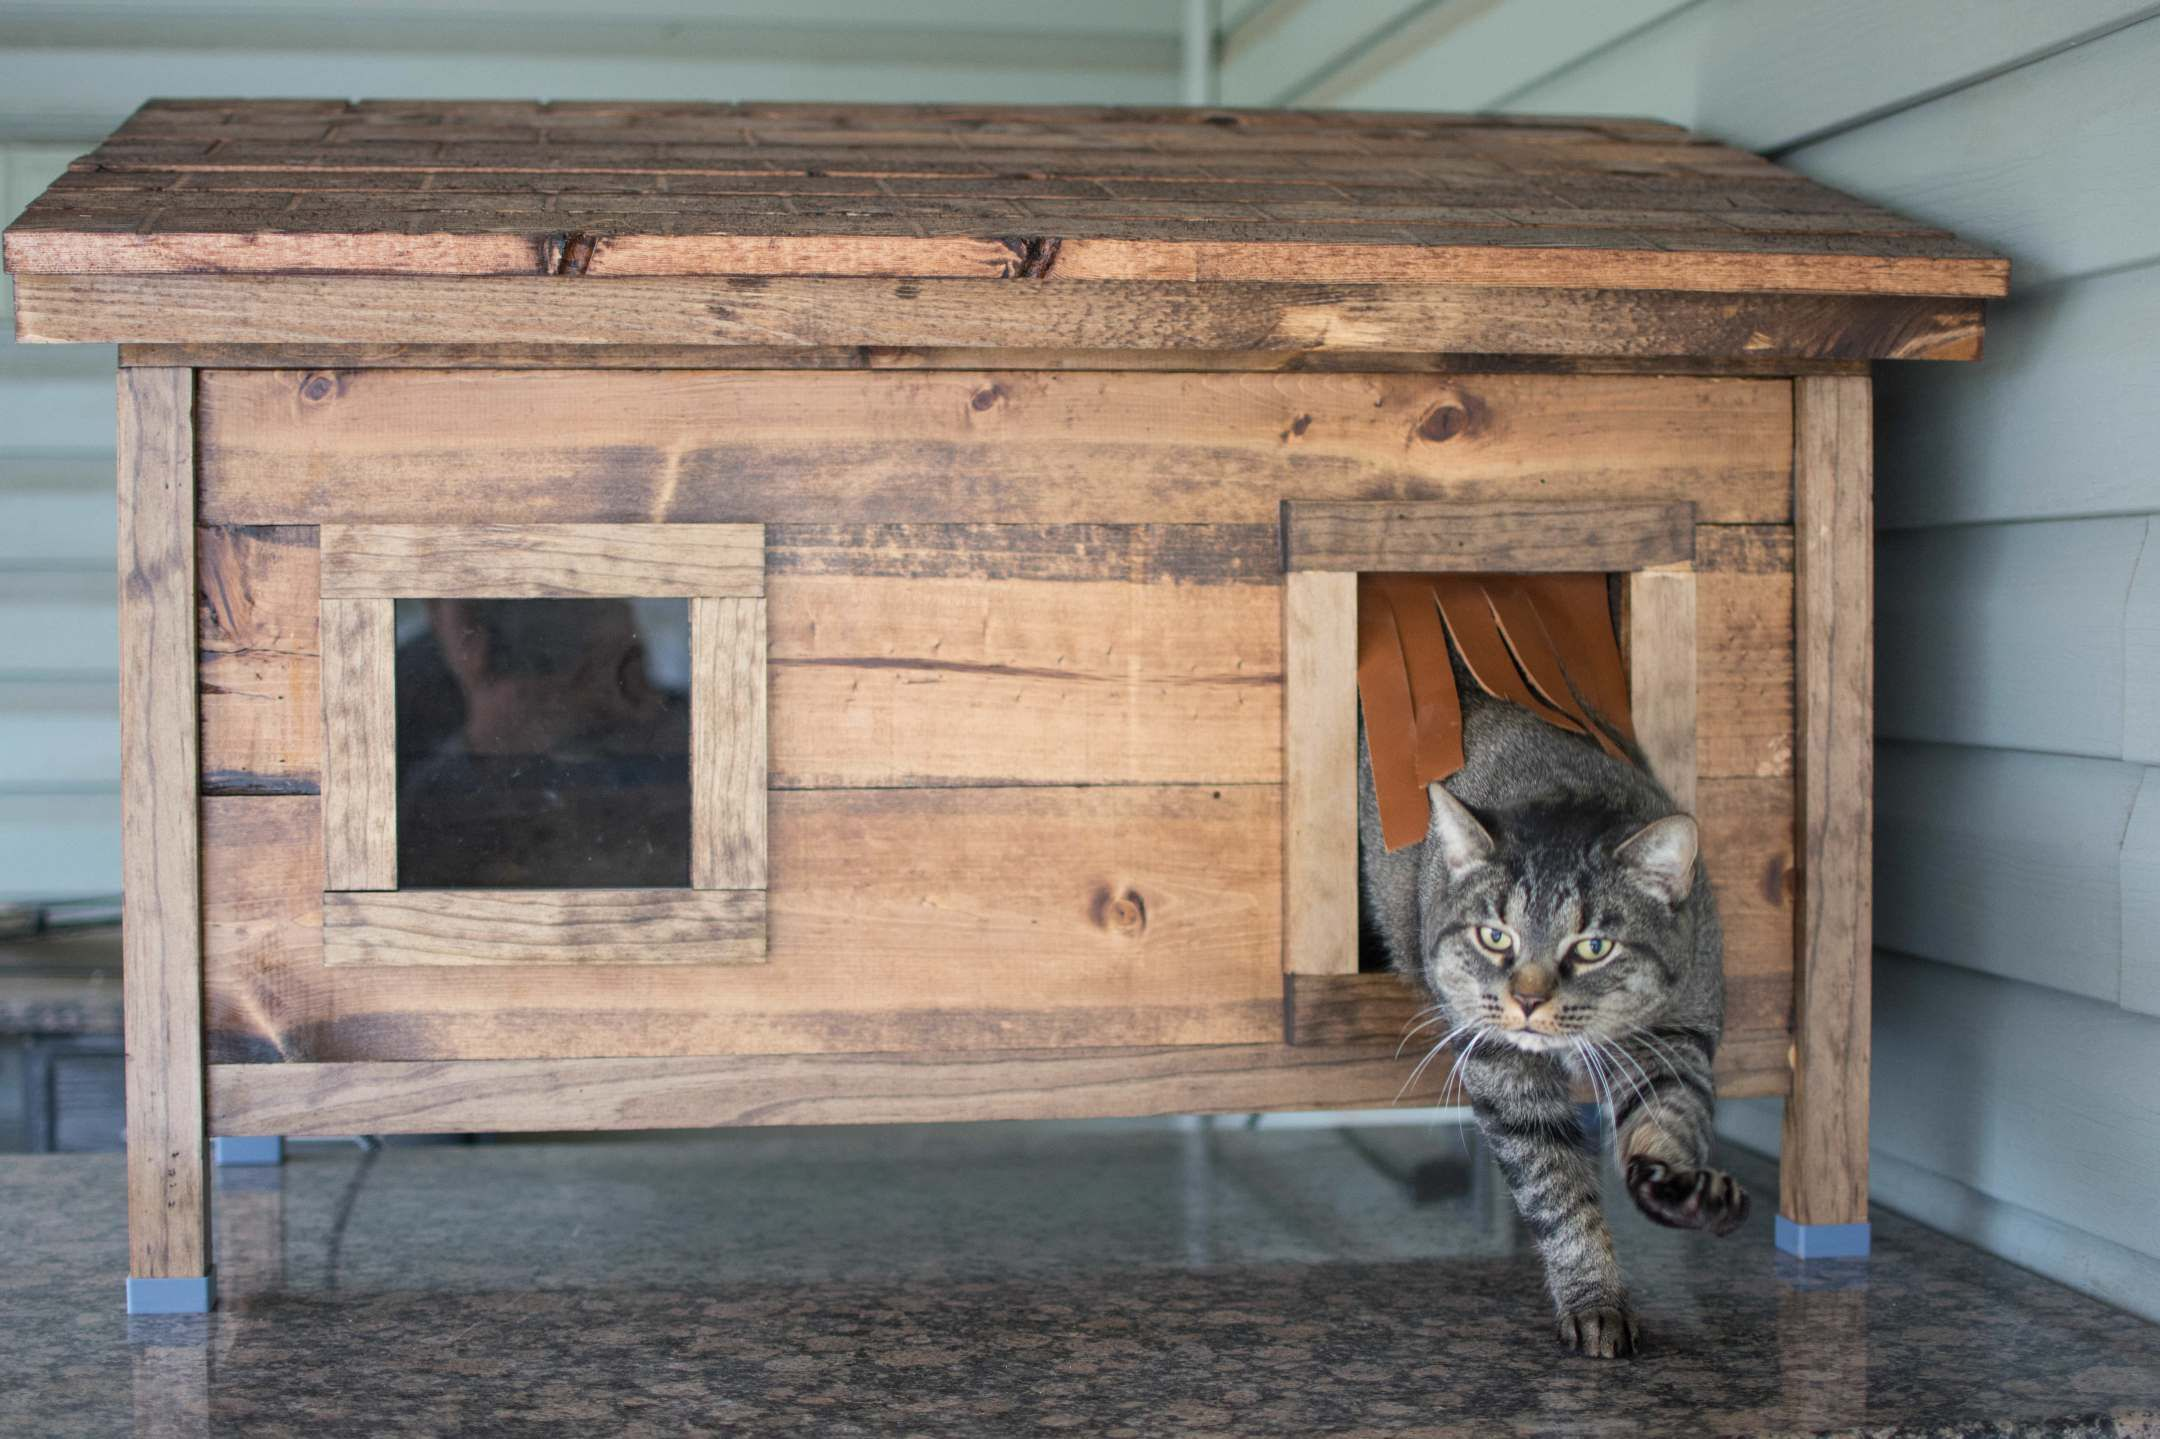 How To Build A Diy Outdoor Cat House Guide With Pictures Cluttter In 2020 Outdoor Cat House Cat House Diy Cat House Diy Cardboard